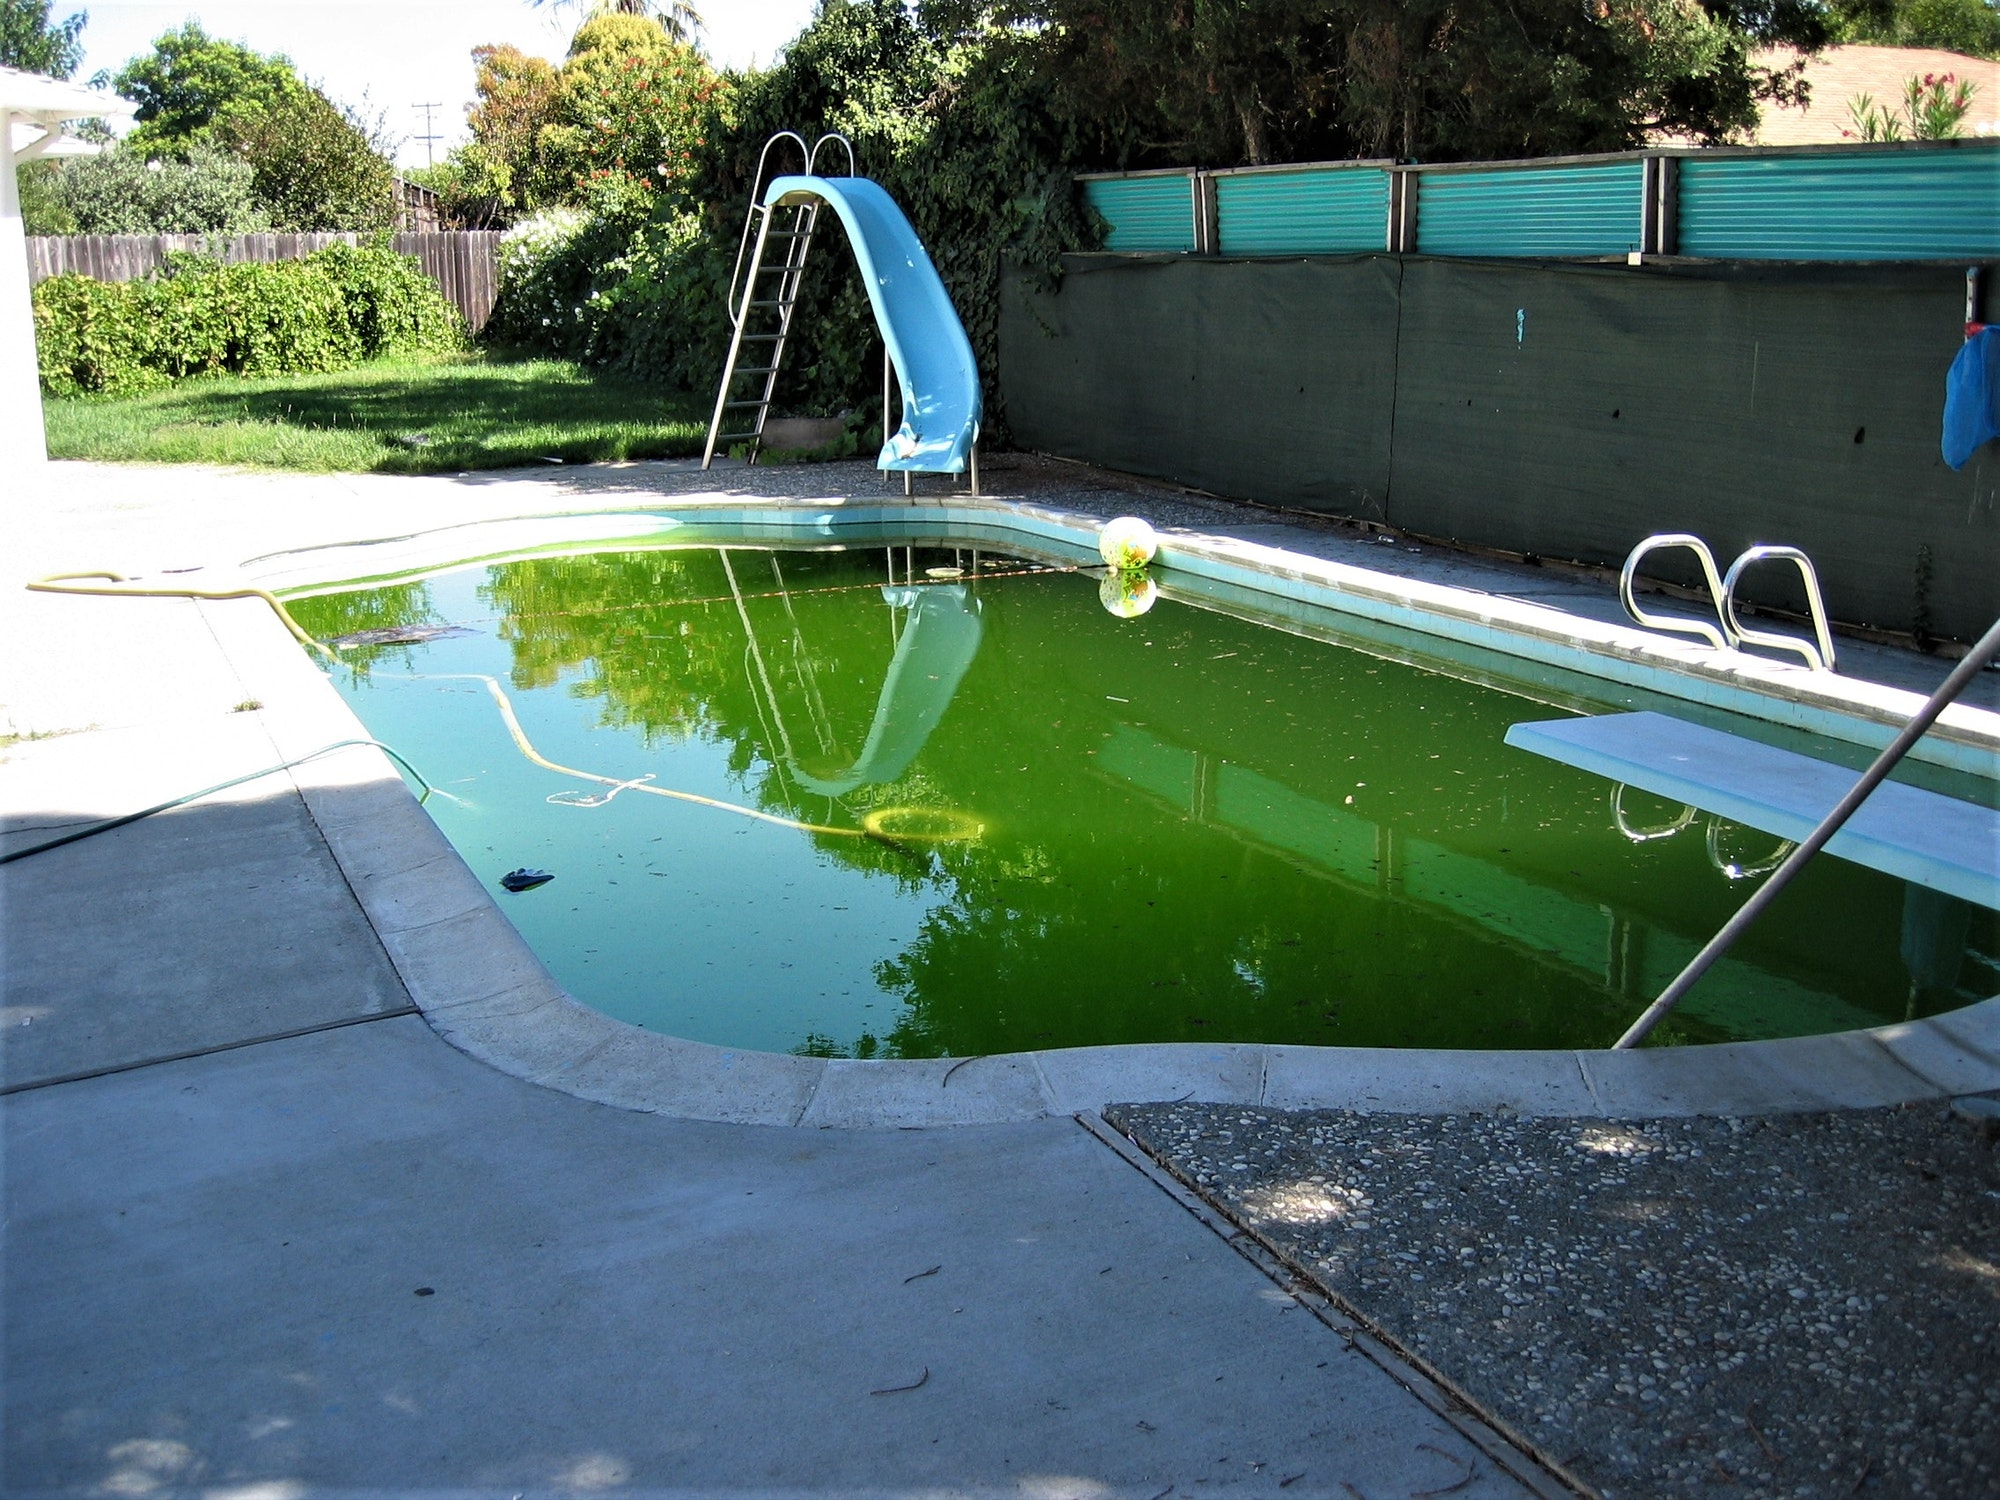 Swimming Pools - Alameda County Mosquito Abatement District